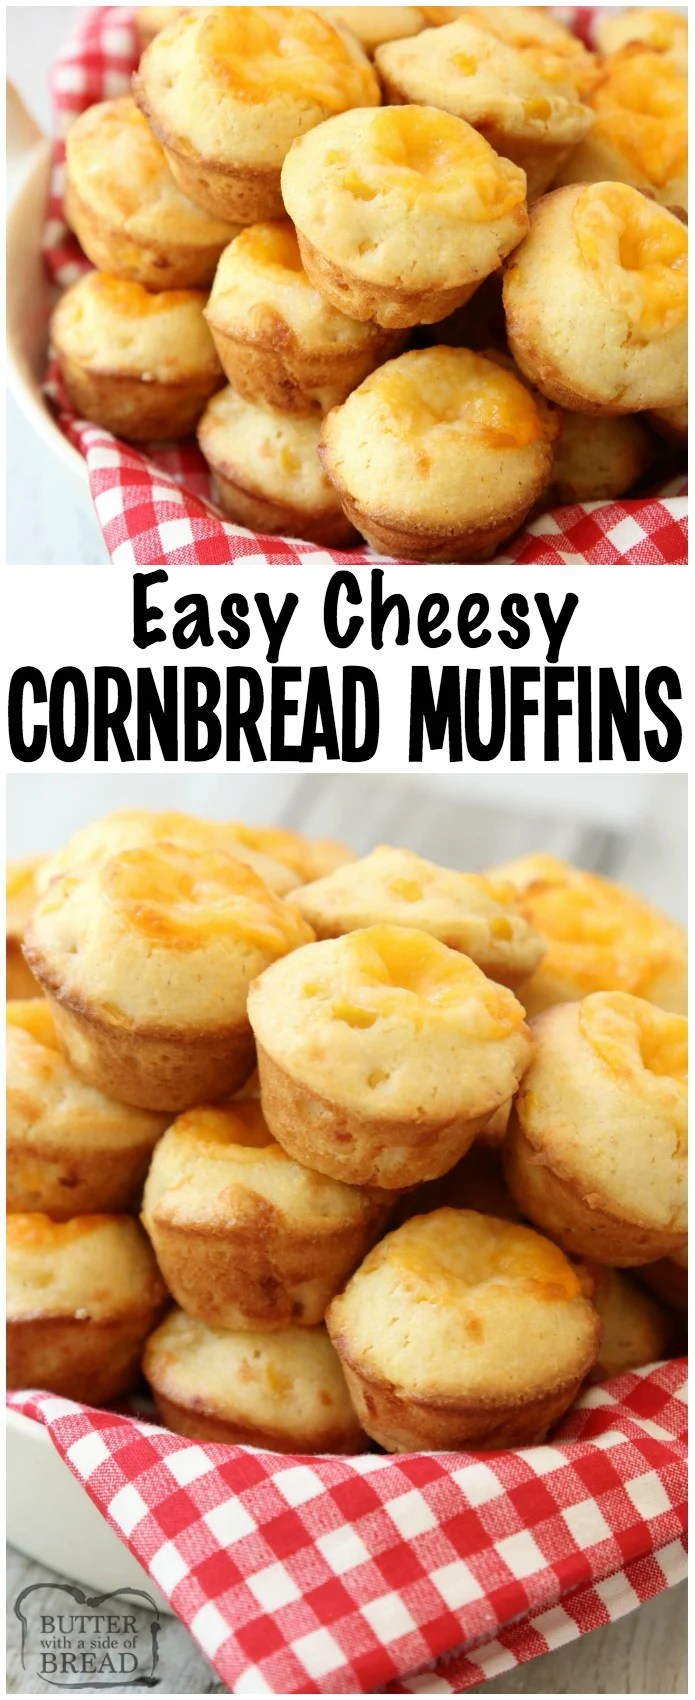 Cheesy Cornbread Muffins are delicate, flavorful honey cornbread with a cheddar cheese addition! Fun, bite-sized mini cornbread muffins are perfect for accompanying lunch or dinner any time of the year! #cornbread #muffin #recipe #cheese from BUTTER WITH A SIDE OF BREAD